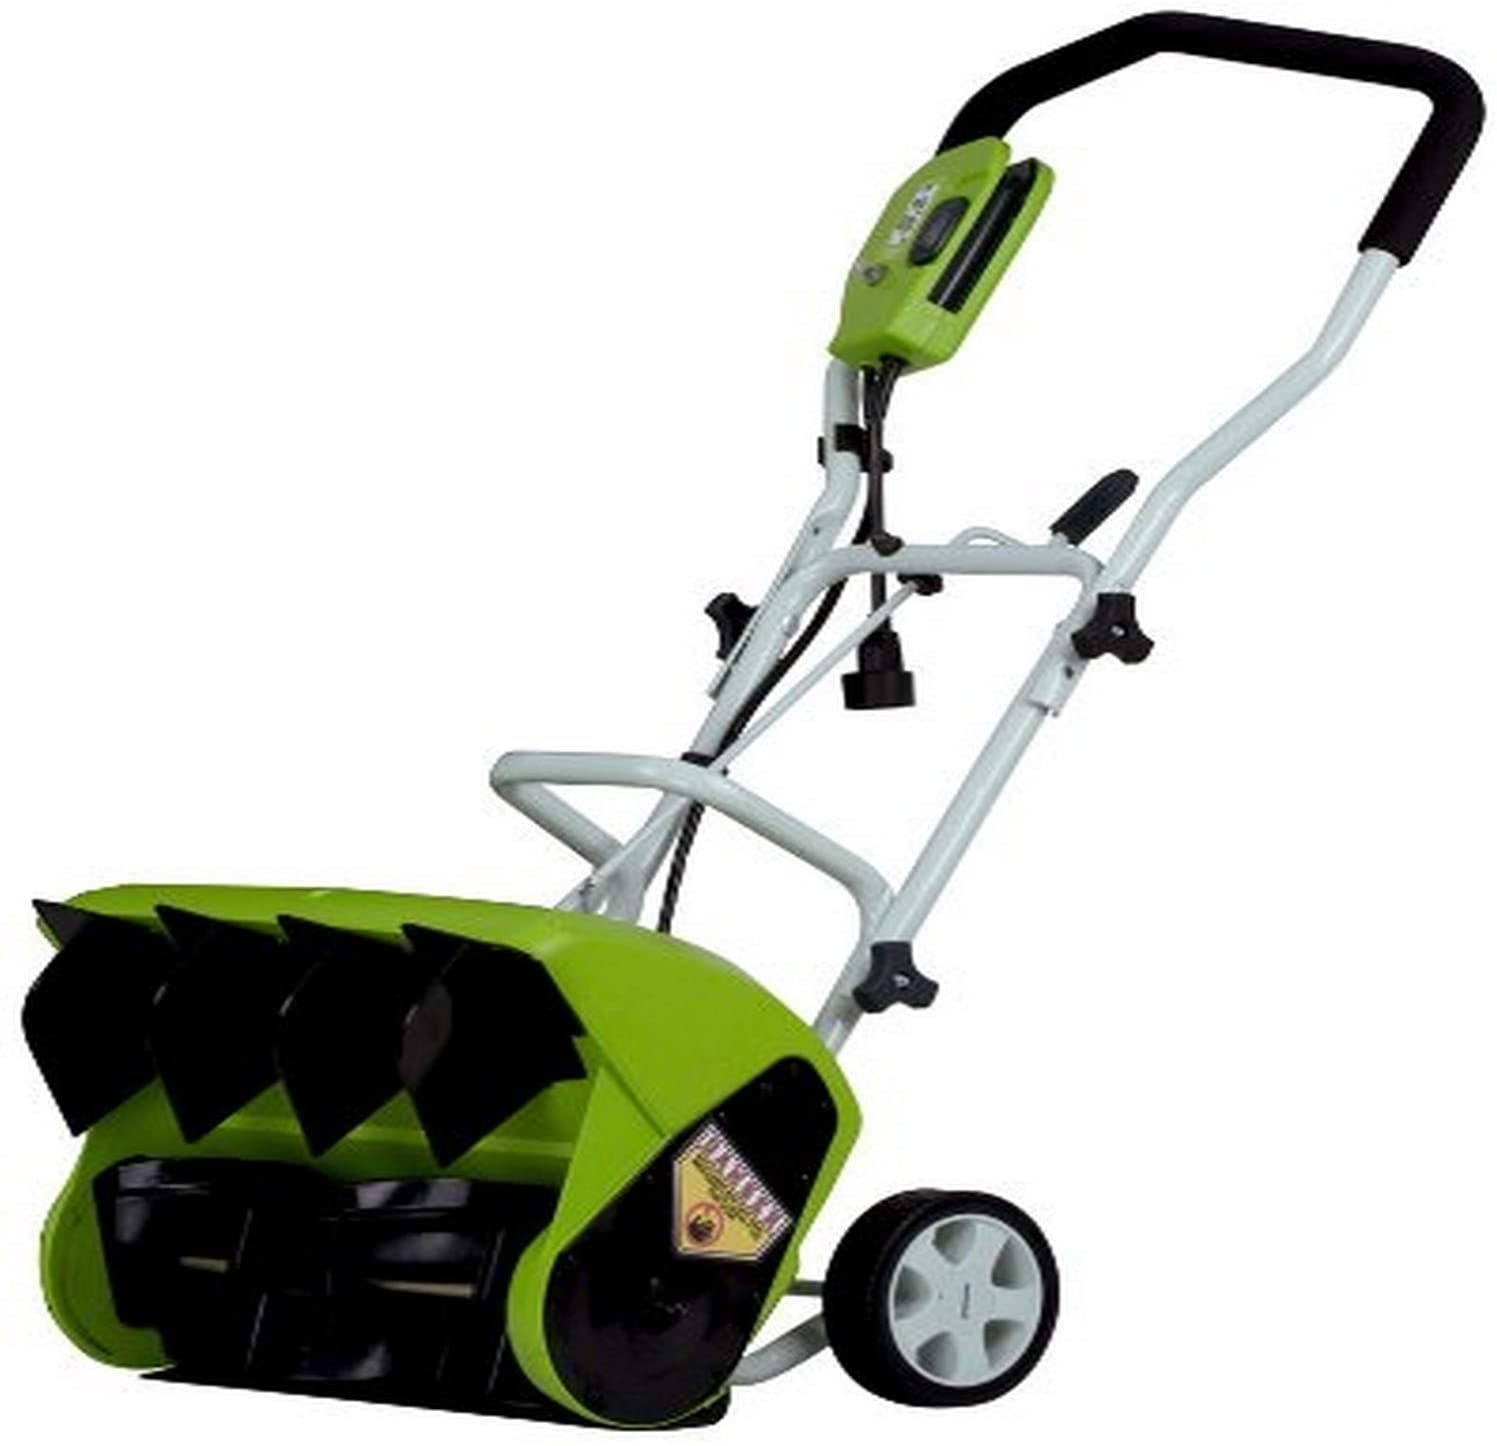 Greenworks 26022 Corded Snow Thrower